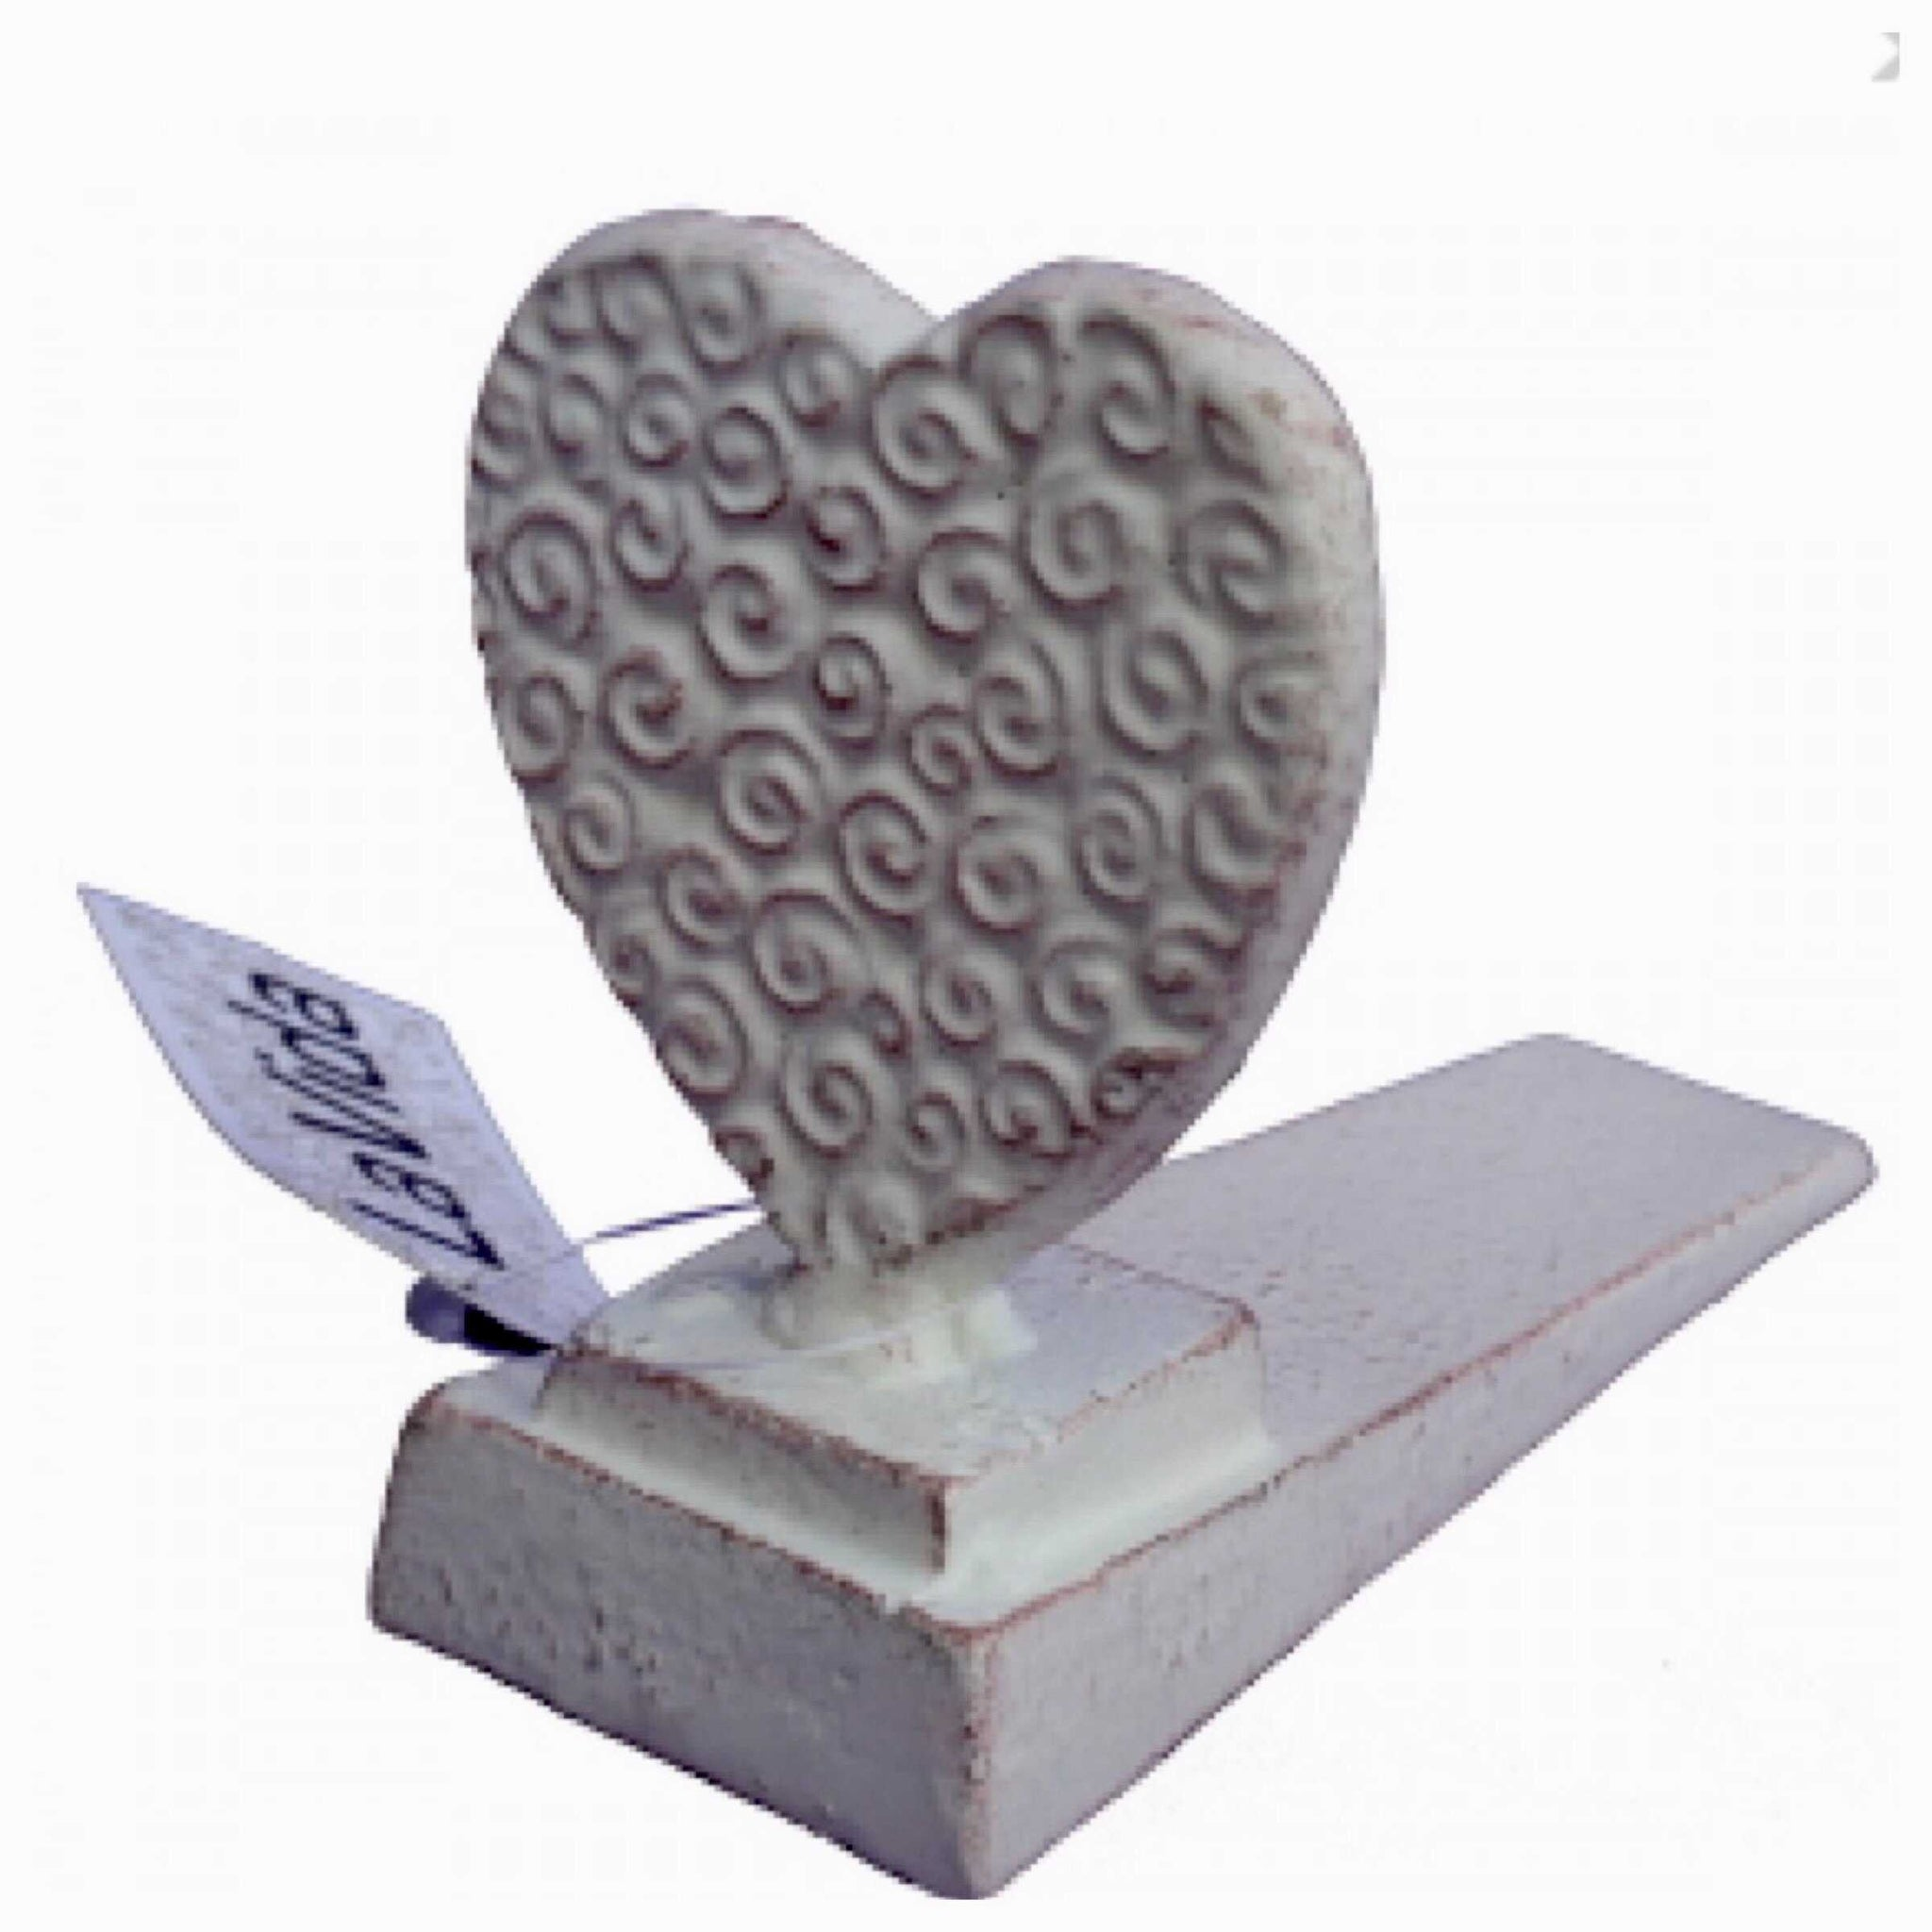 Heart White Cast Iron Door Stop Wedge - The Renmy Store